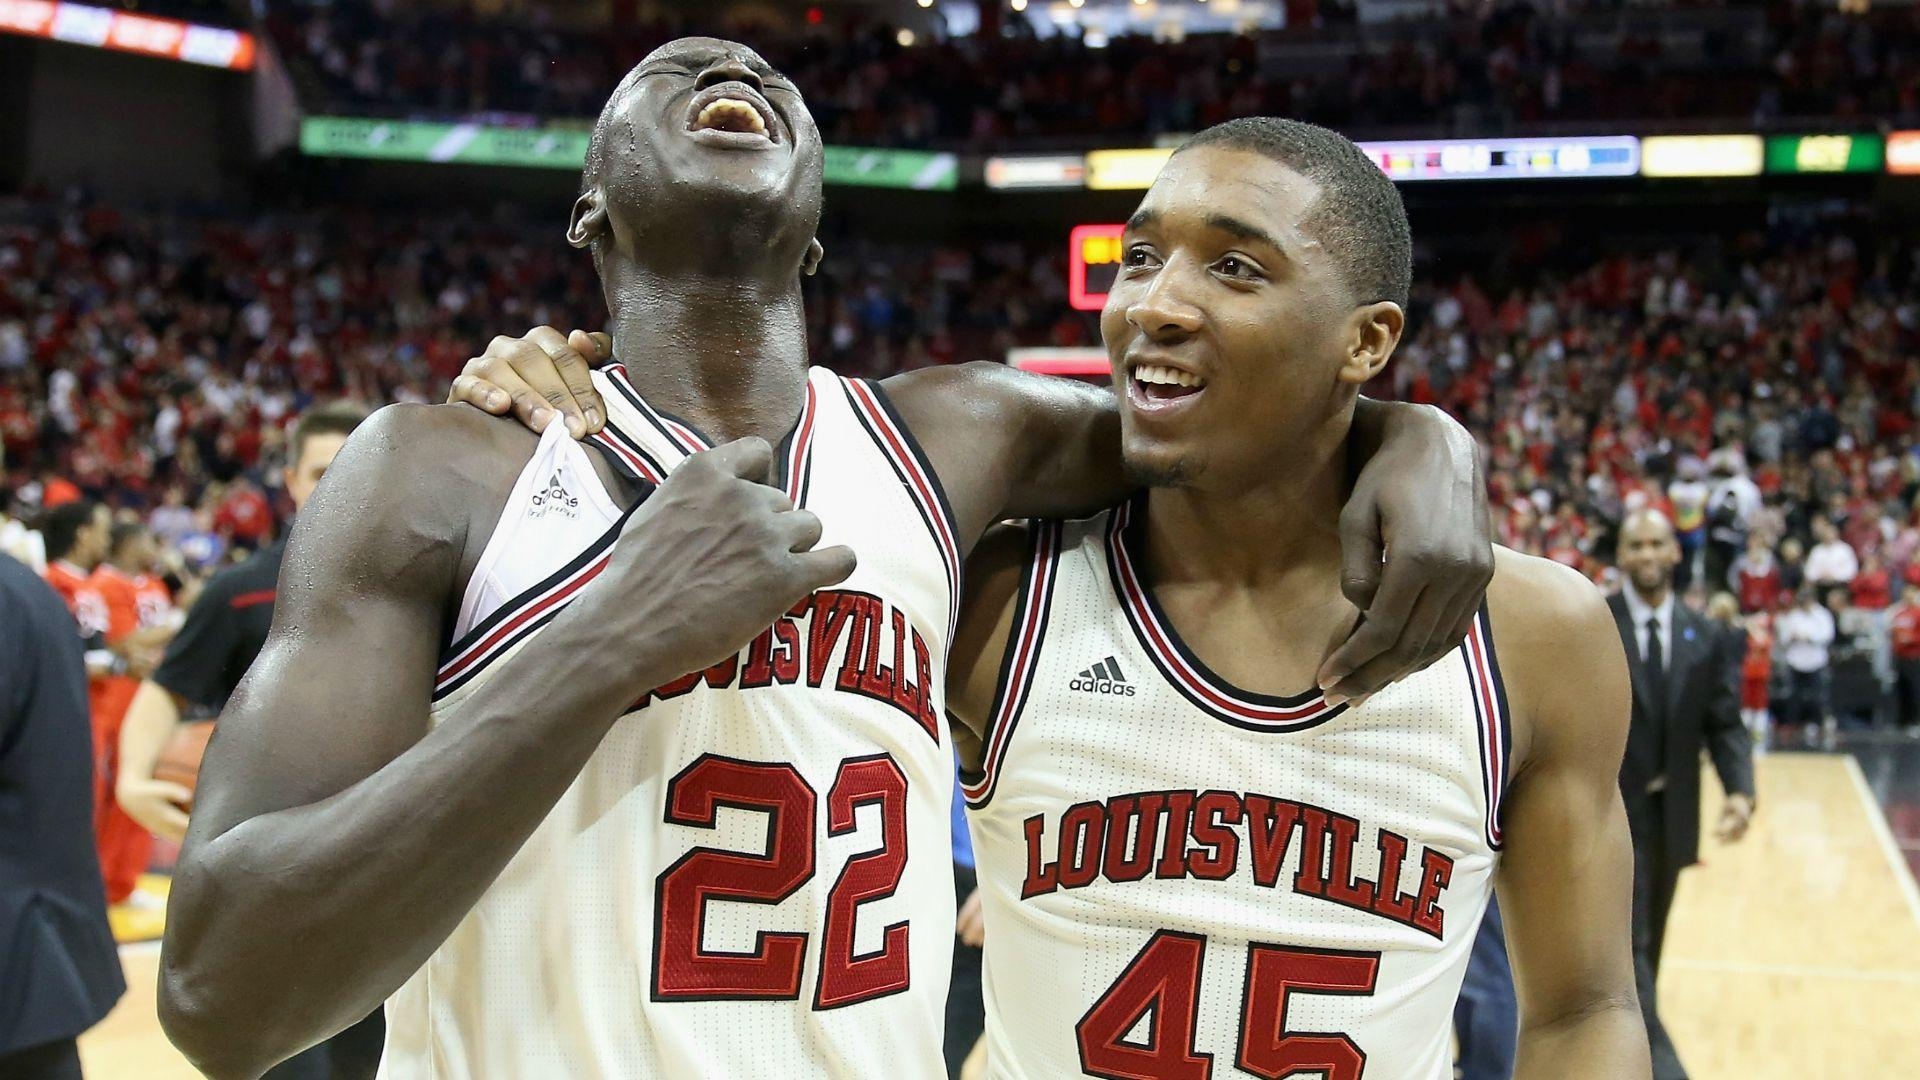 Louisville basketball's sophomores could take over NCAA, with NBA